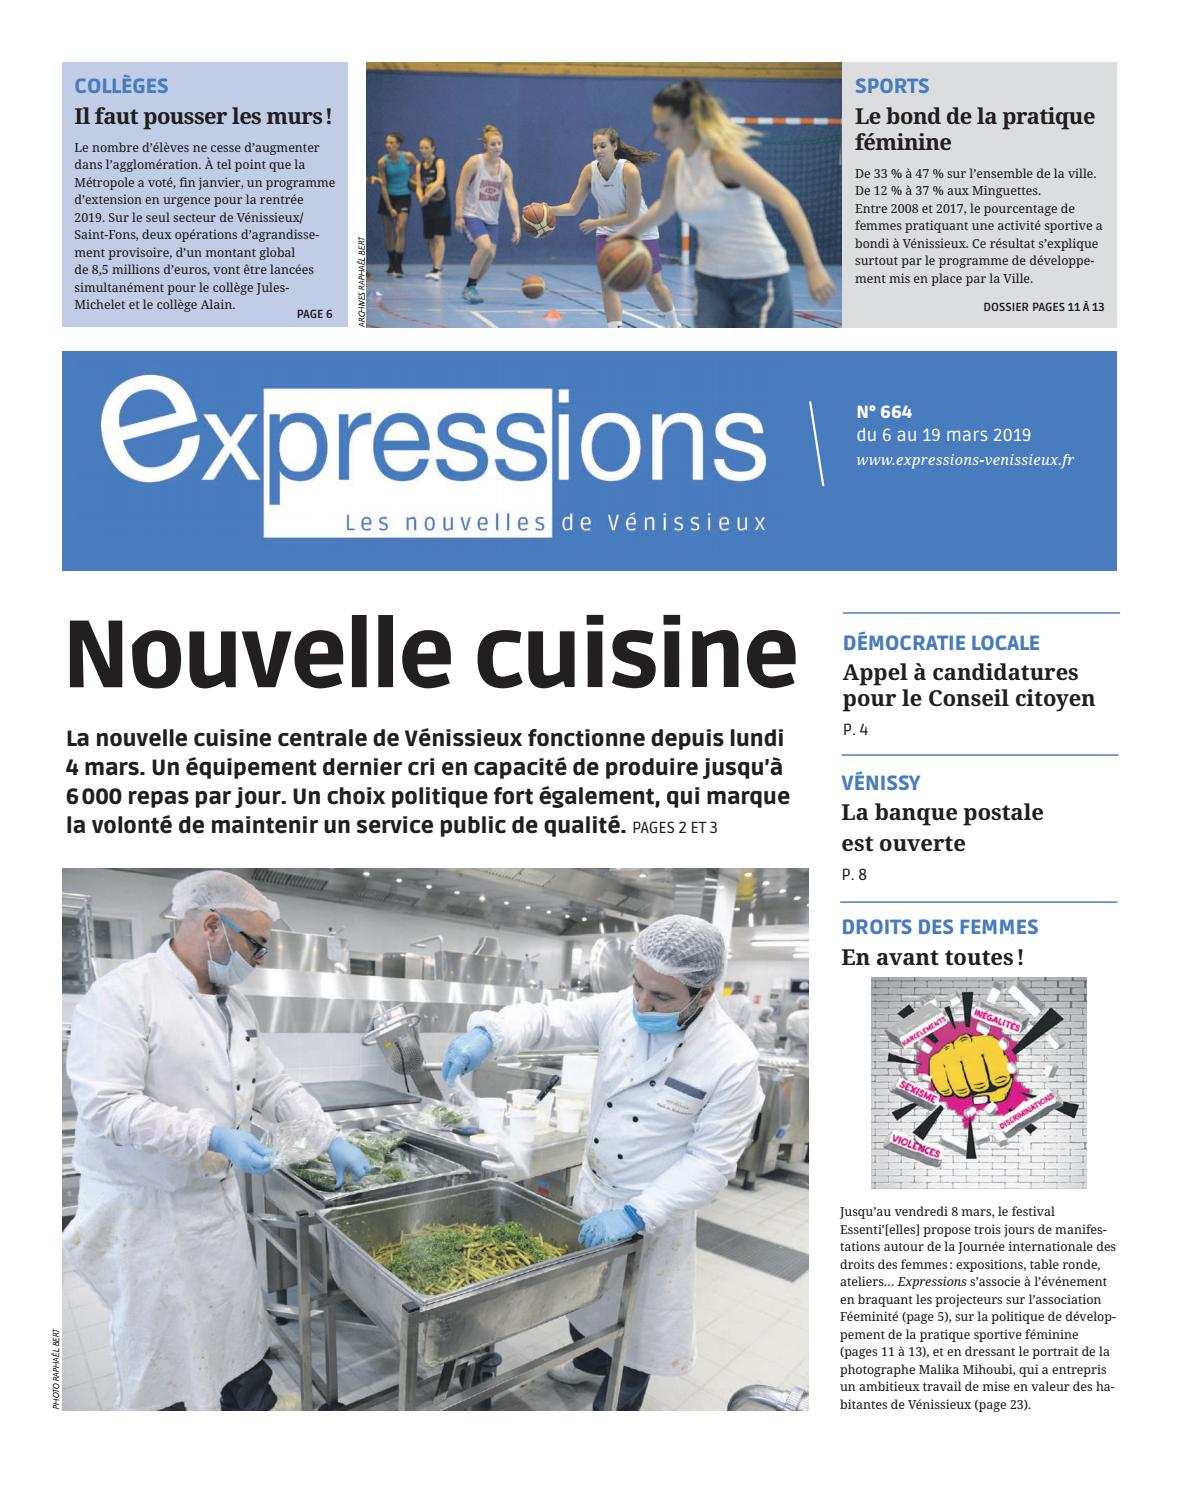 664 664 Issuu By 664 Expressions Expressions Issuu Expressions By vb7gYf6y